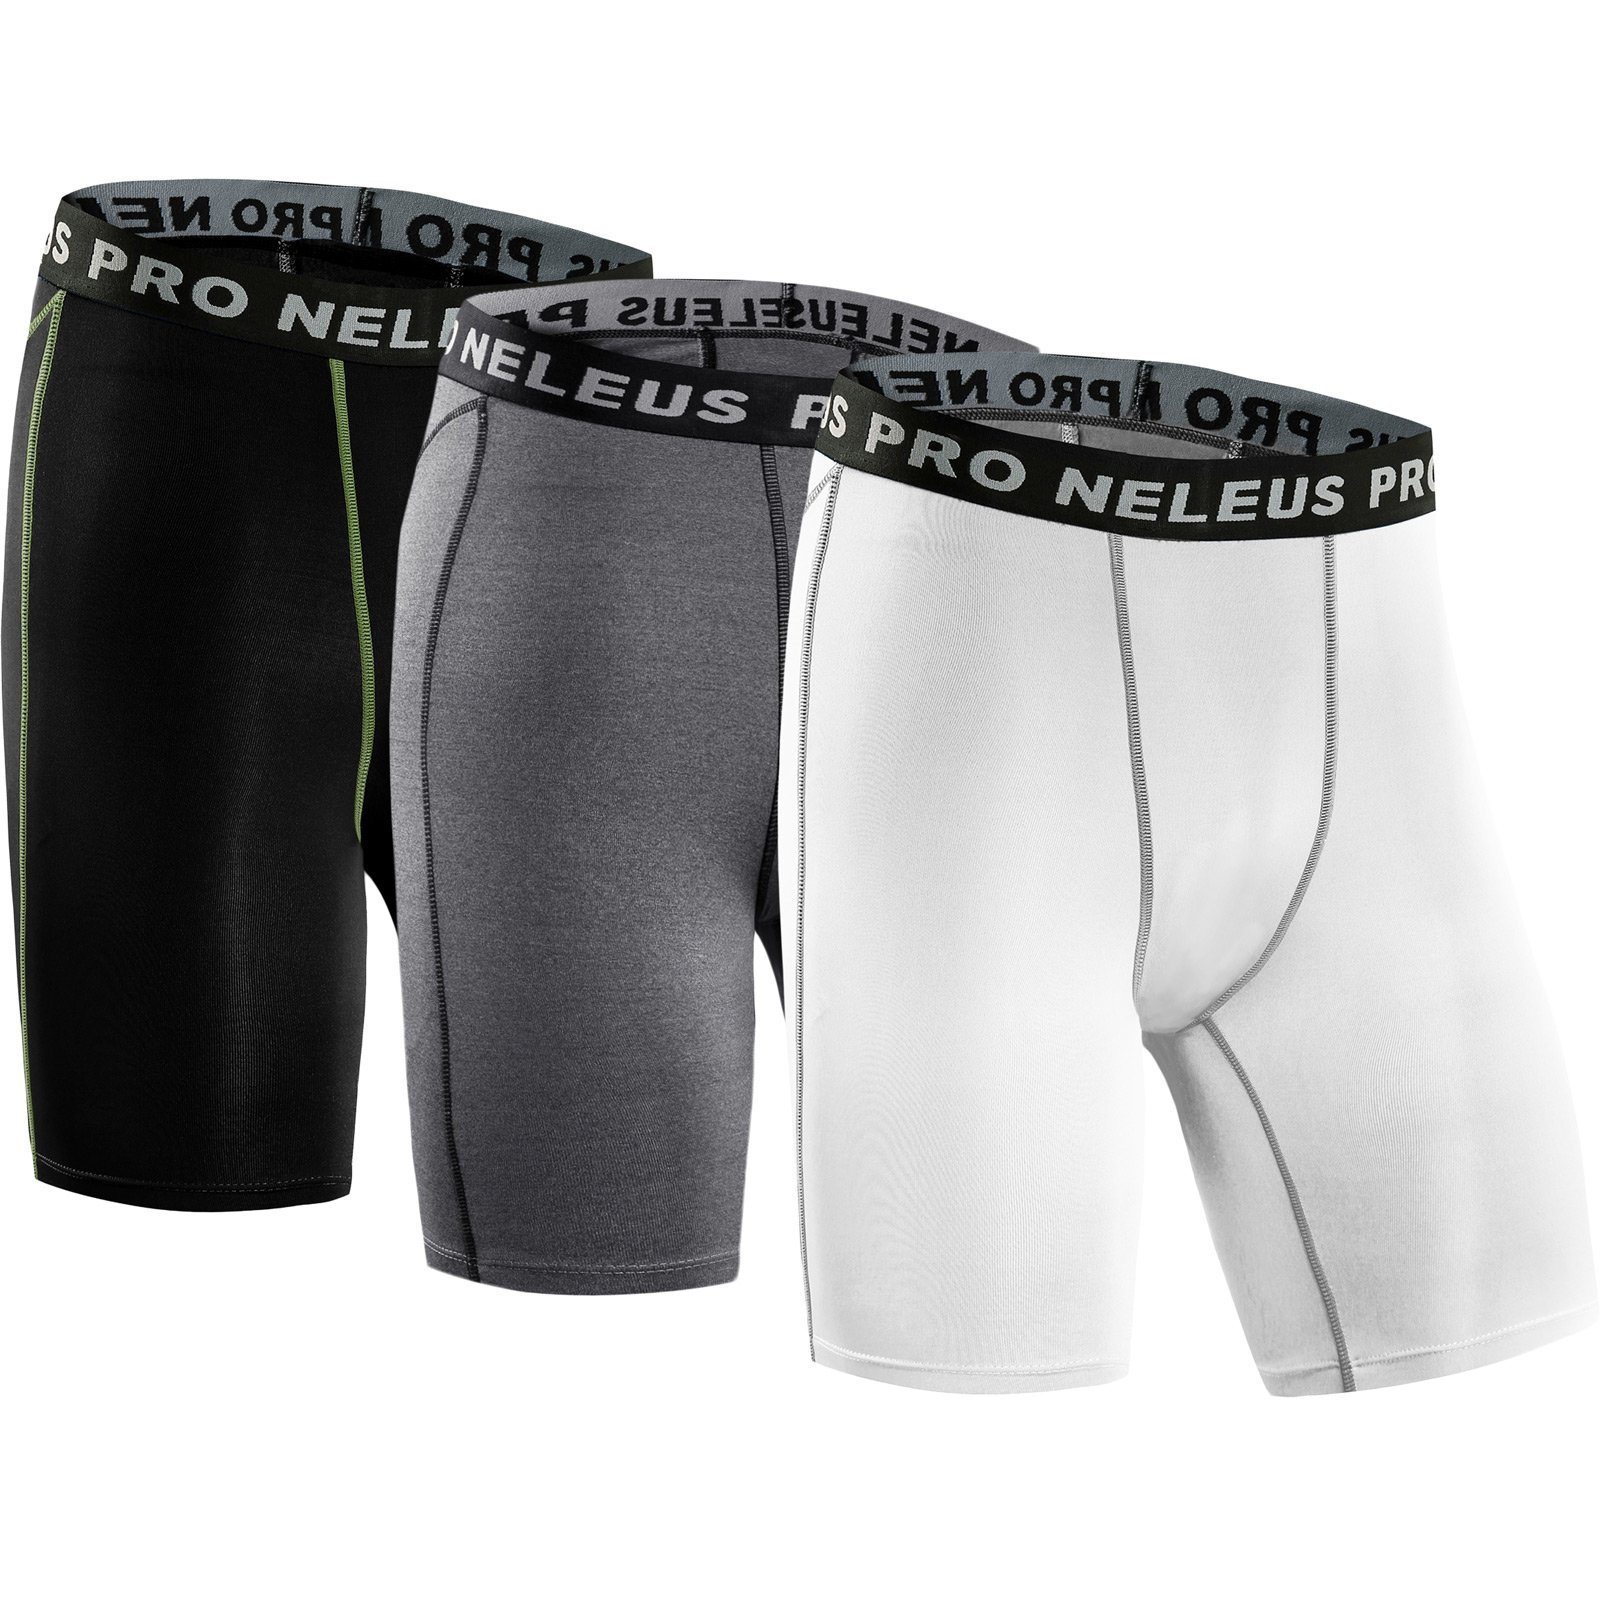 Neleus Men's 3 Pack Compression Short,047,Black,Grey,White,US S,EU M by Neleus (Image #1)